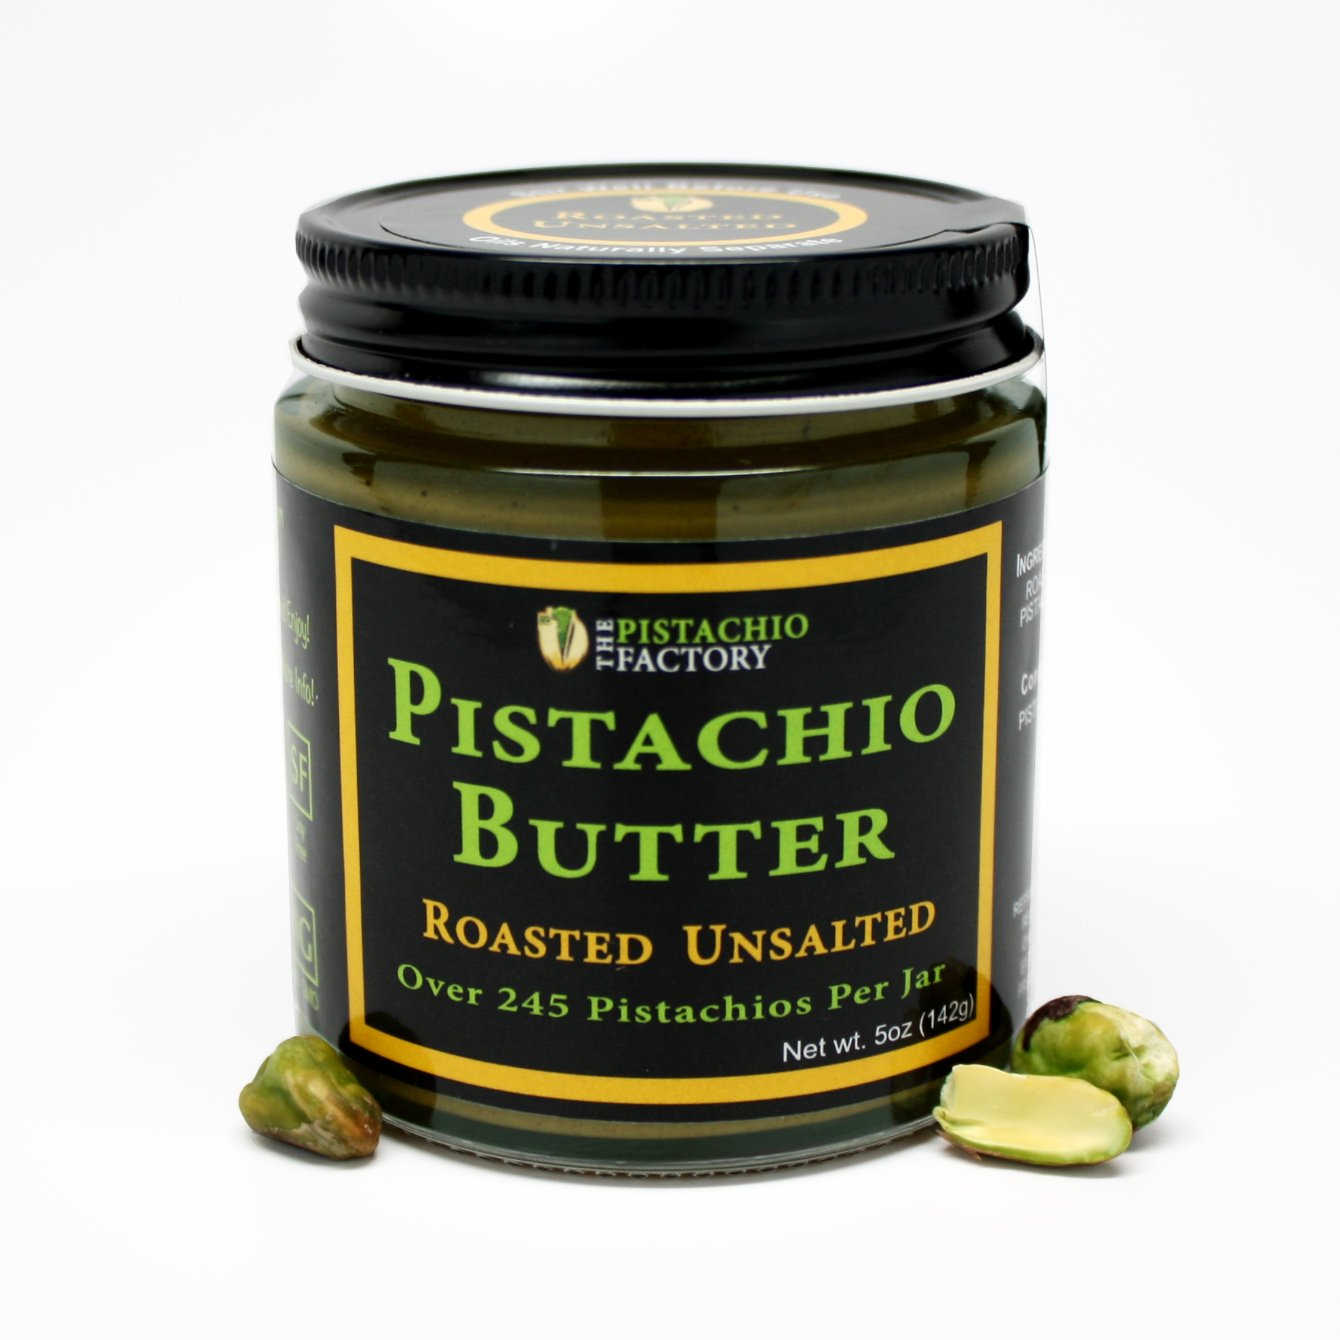 Pistachio Butter - Roasted Unsalted